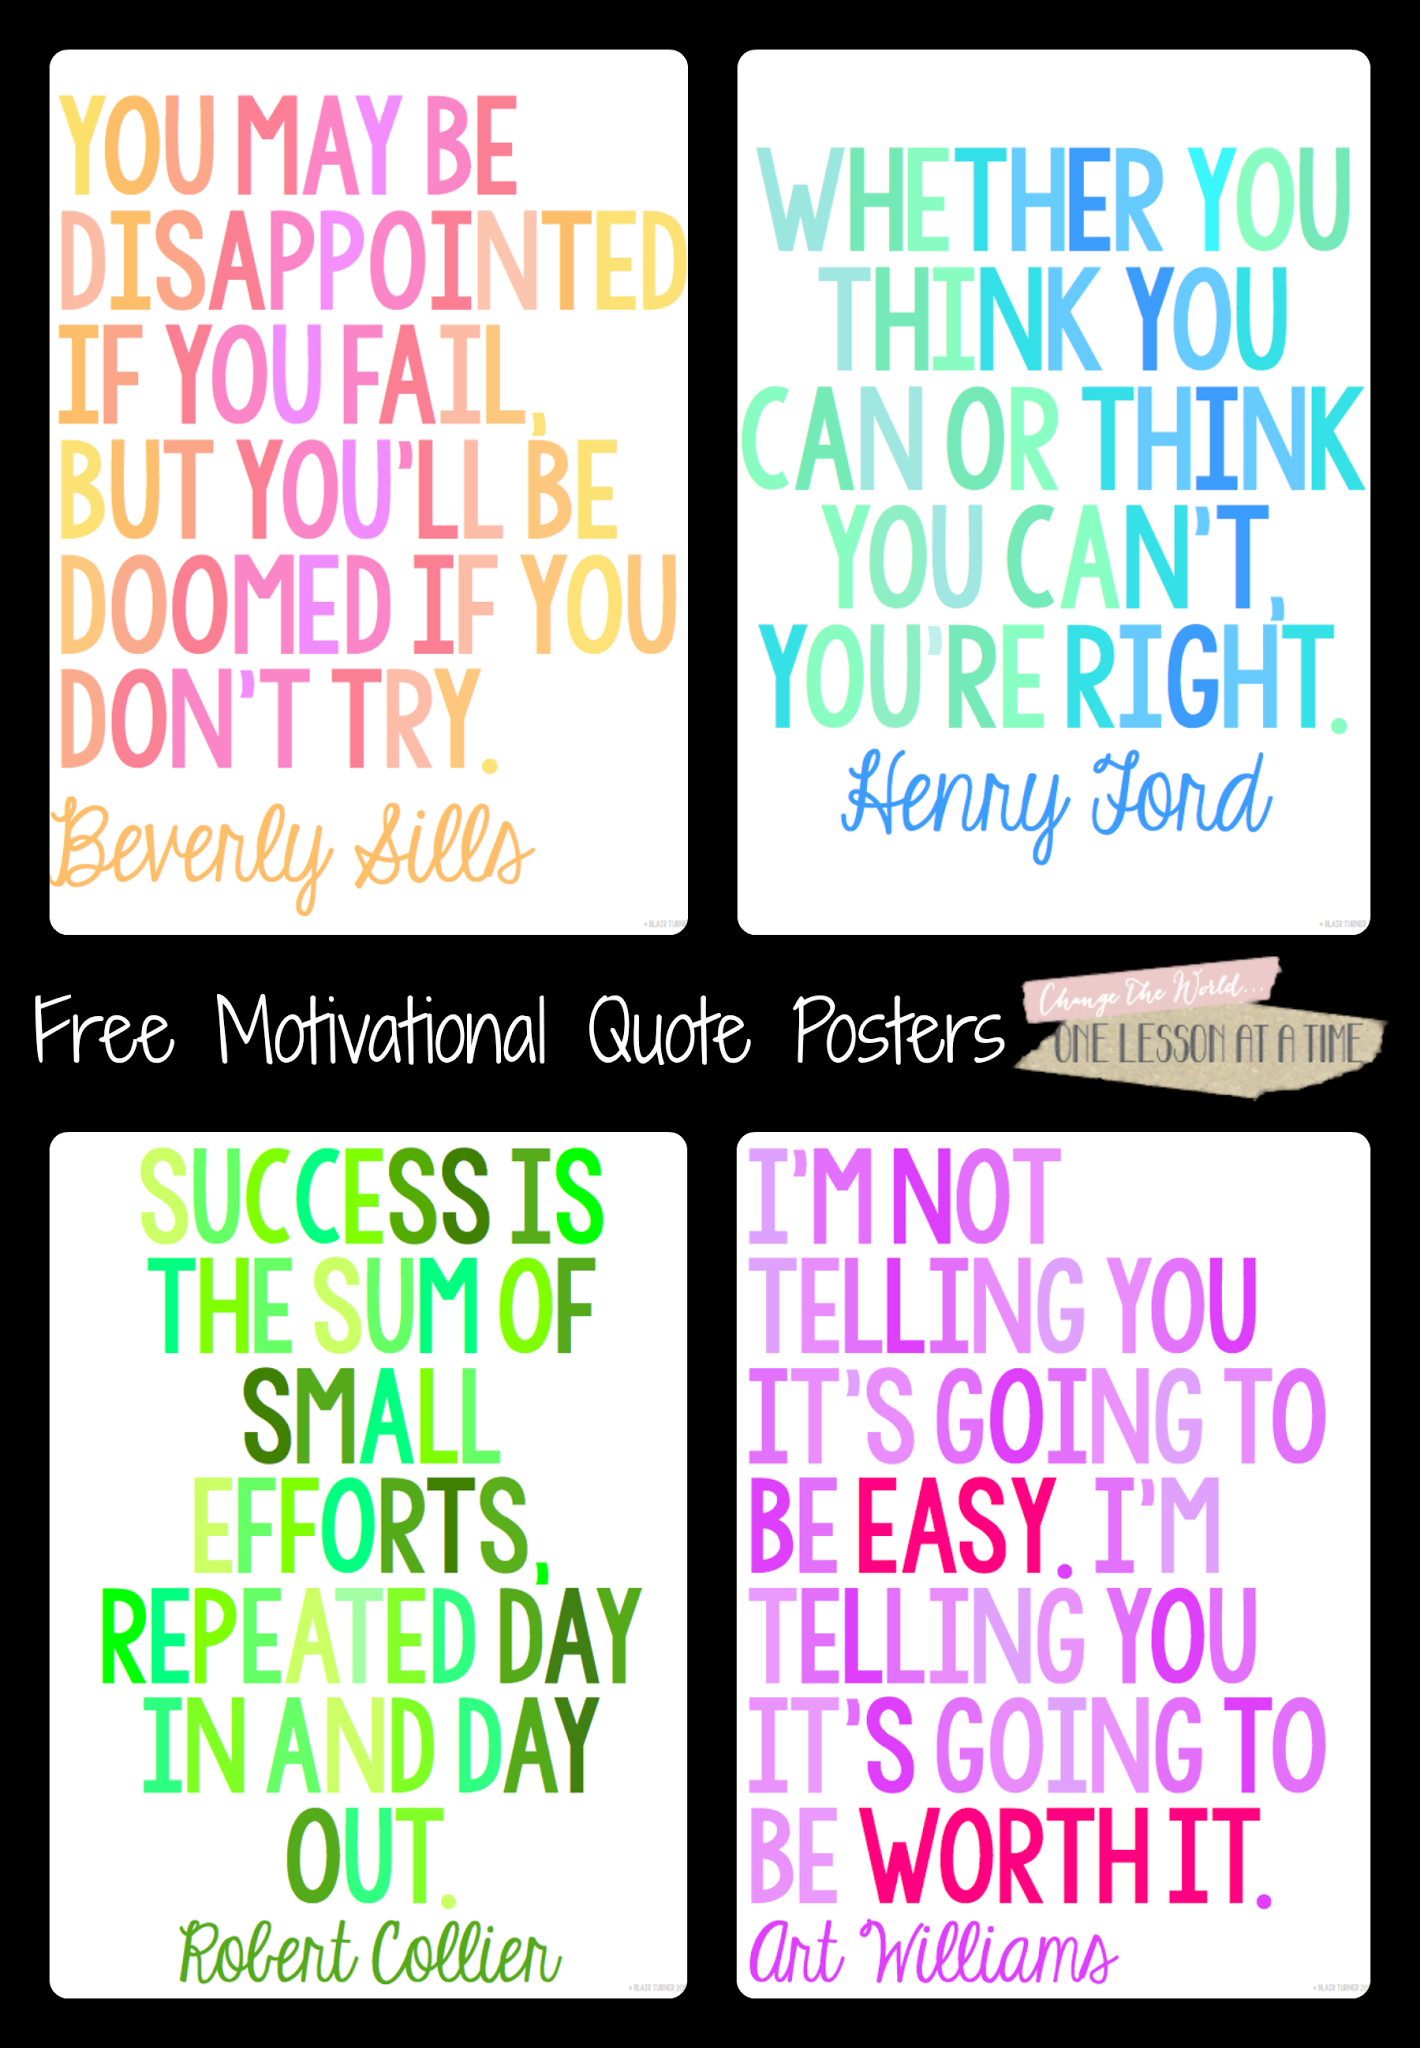 Positive Motivational Quotes For Students: Motivational Quotes For State Testing {Free Posters